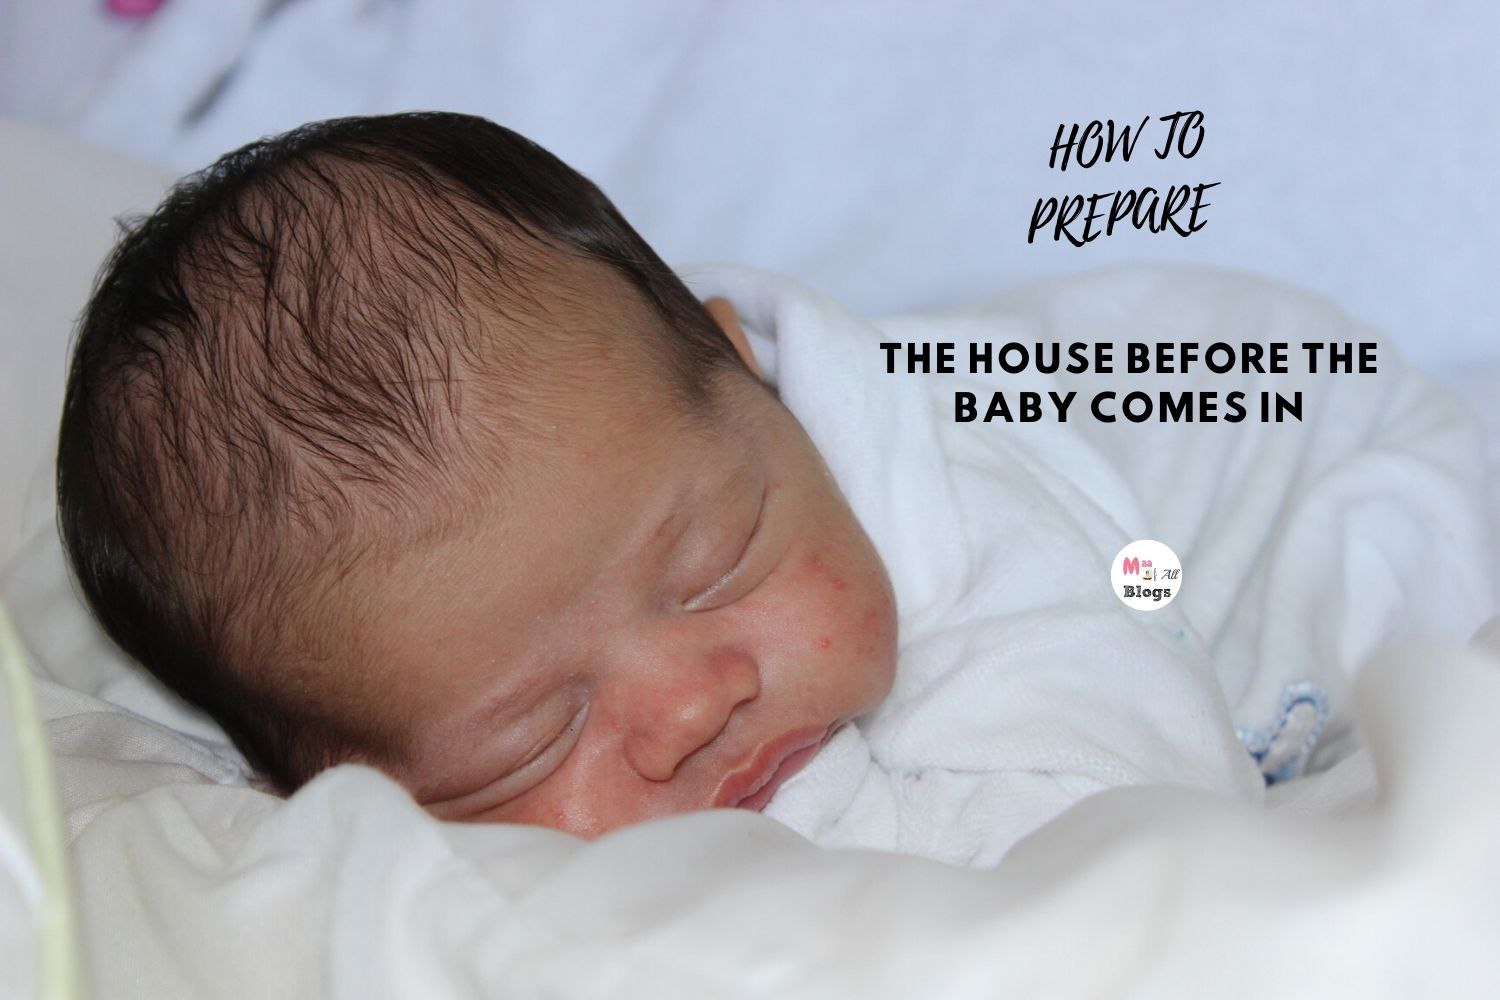 How to prepare the house before the baby comes in